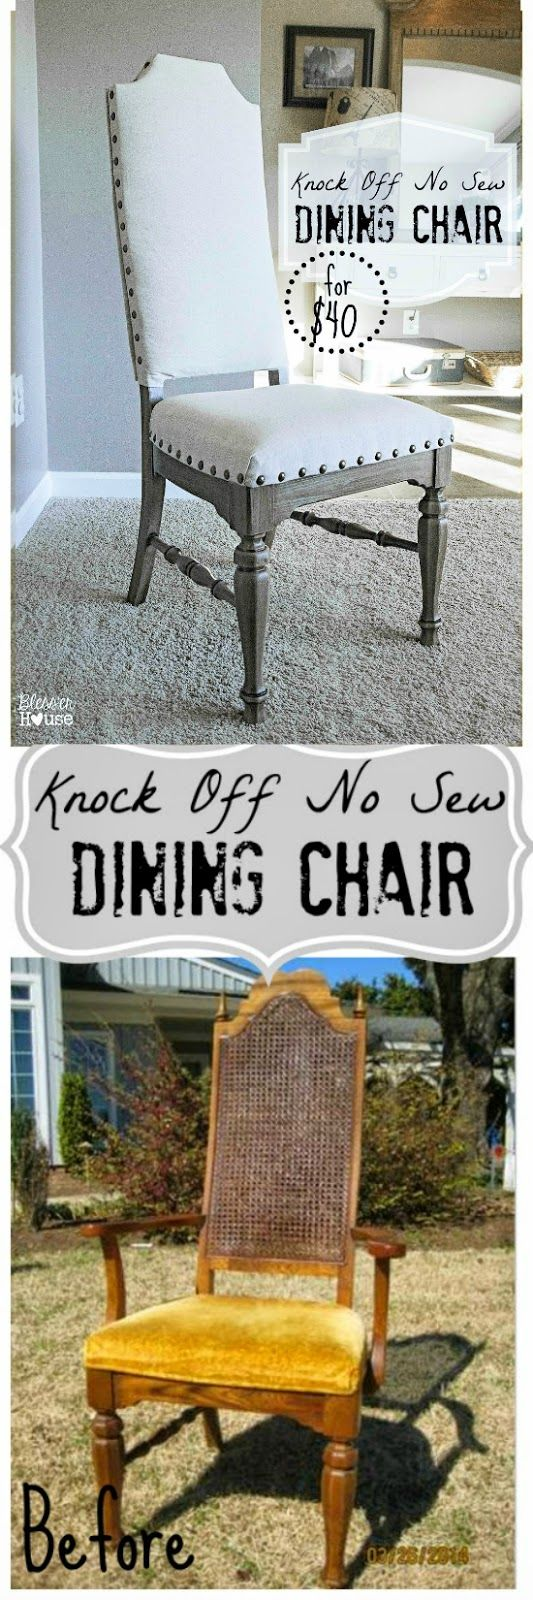 DIY furniture makeover, Furniture redo, chair makeover, Knock Off No Sew Dining Chairs - Bless'er House: